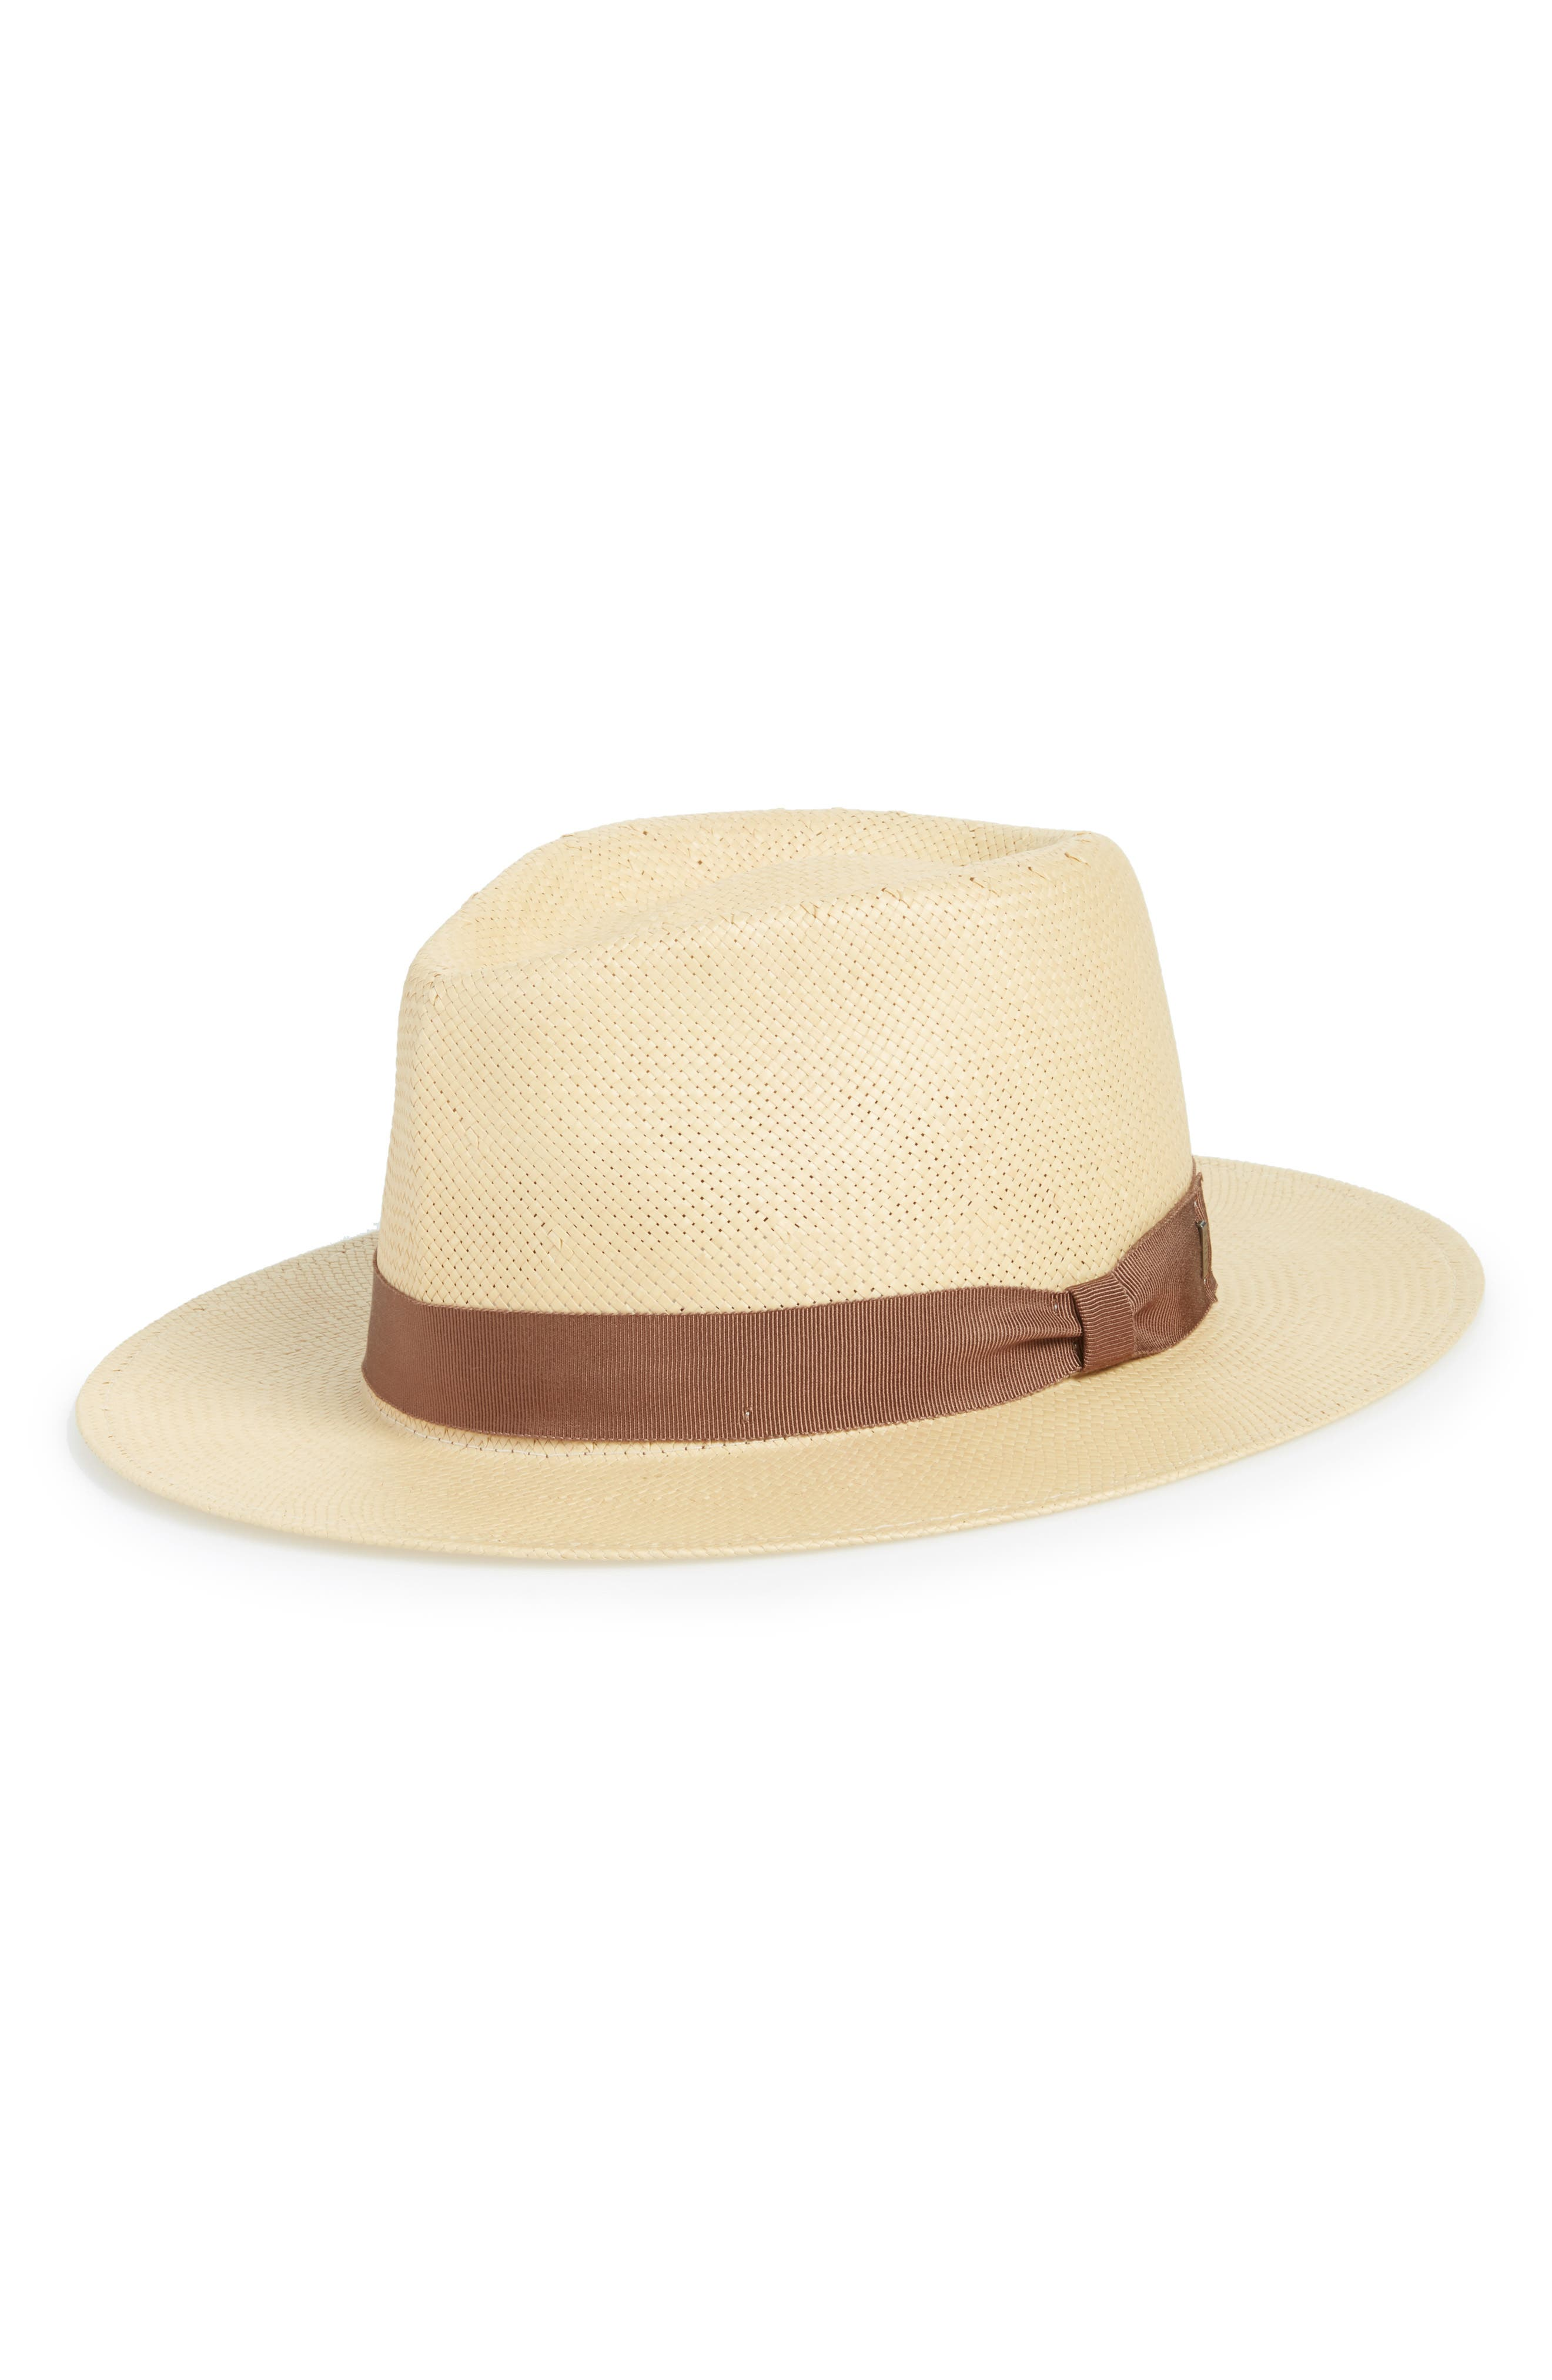 Pencer Straw Panama Hat,                             Main thumbnail 1, color,                             251